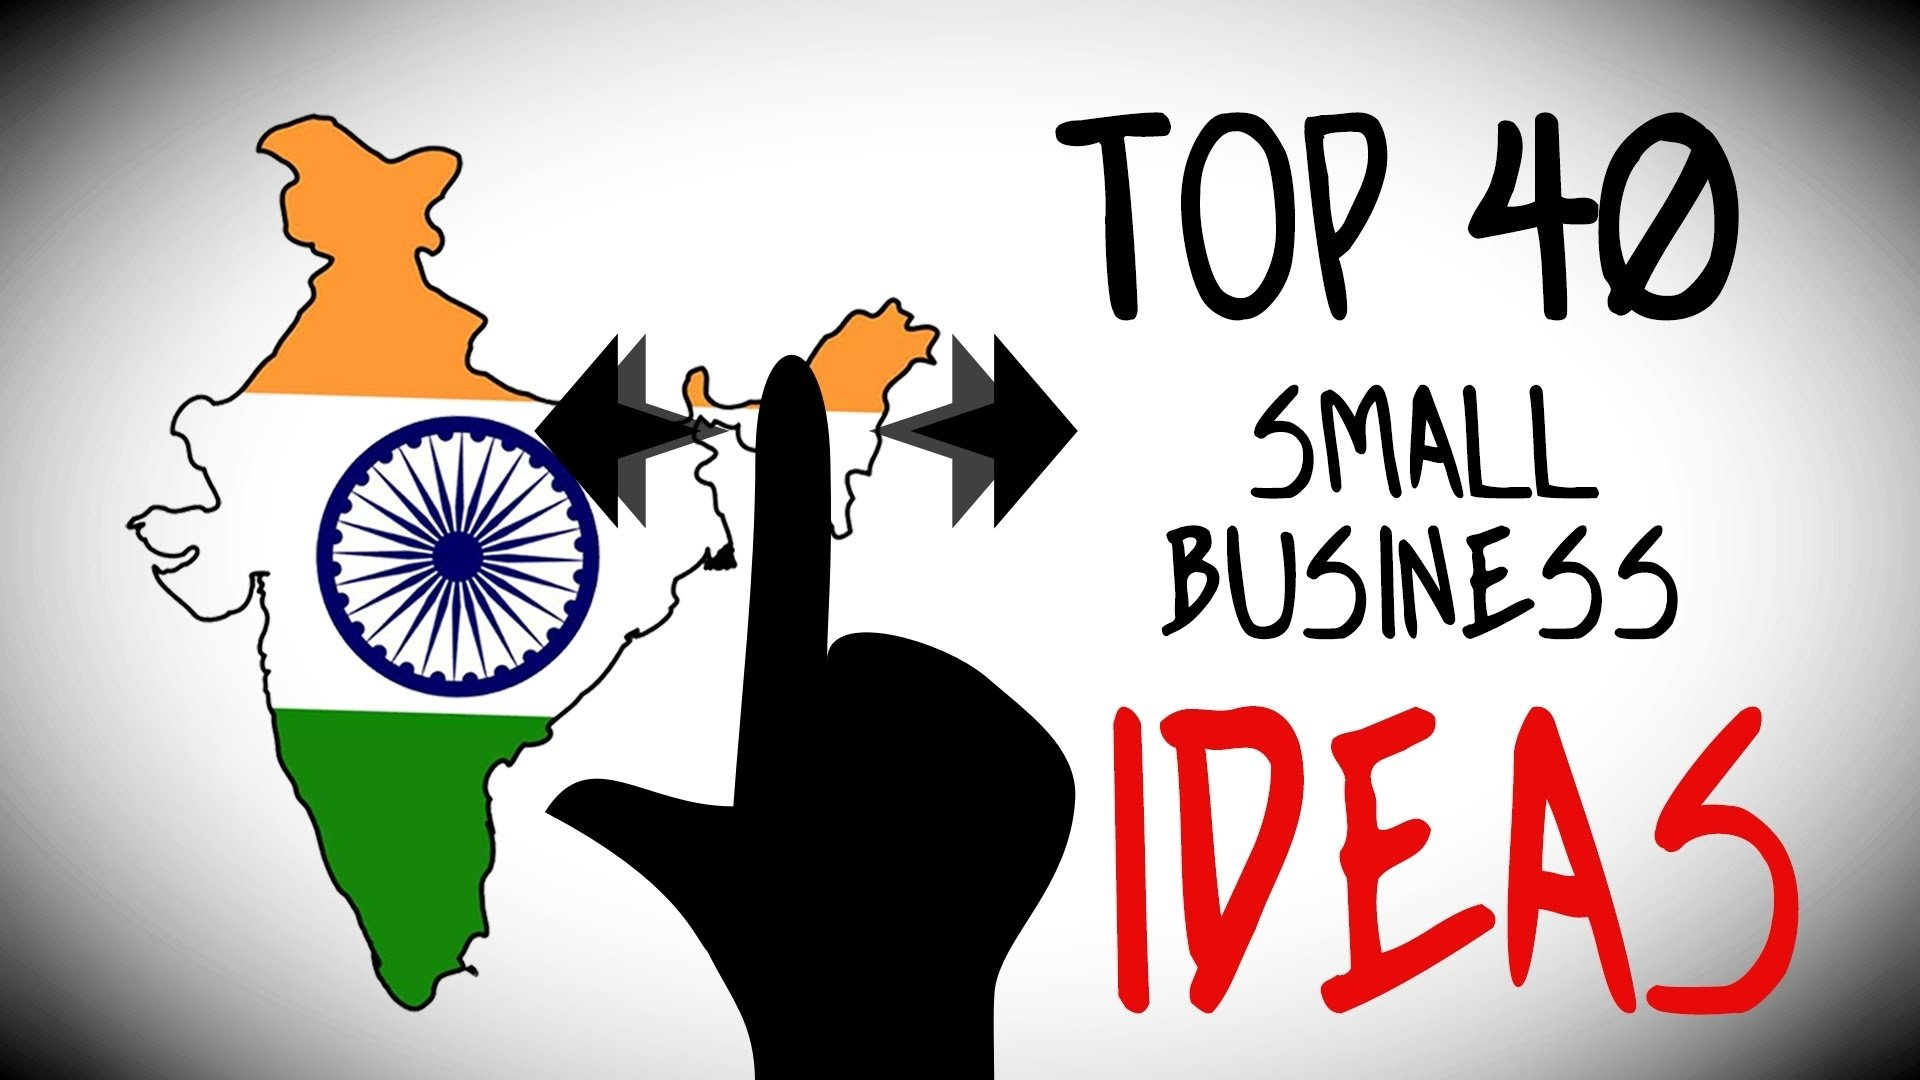 10 Elegant Owning Your Own Business Ideas top 40 small business ideas in india for starting your own business